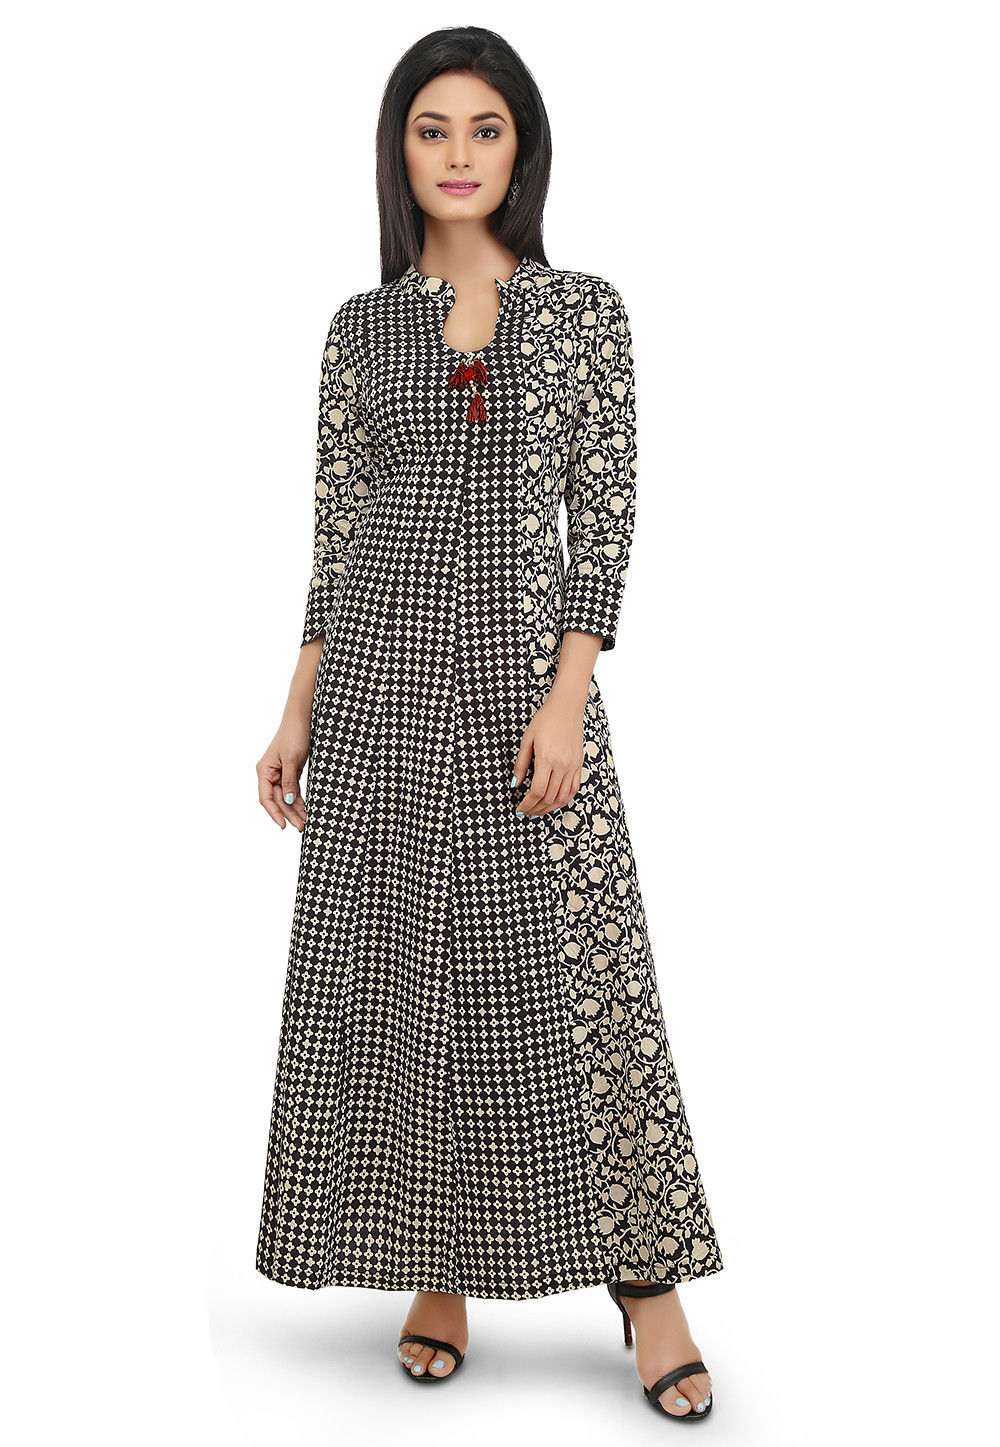 Block Printed Cotton Dress in Black and Beige